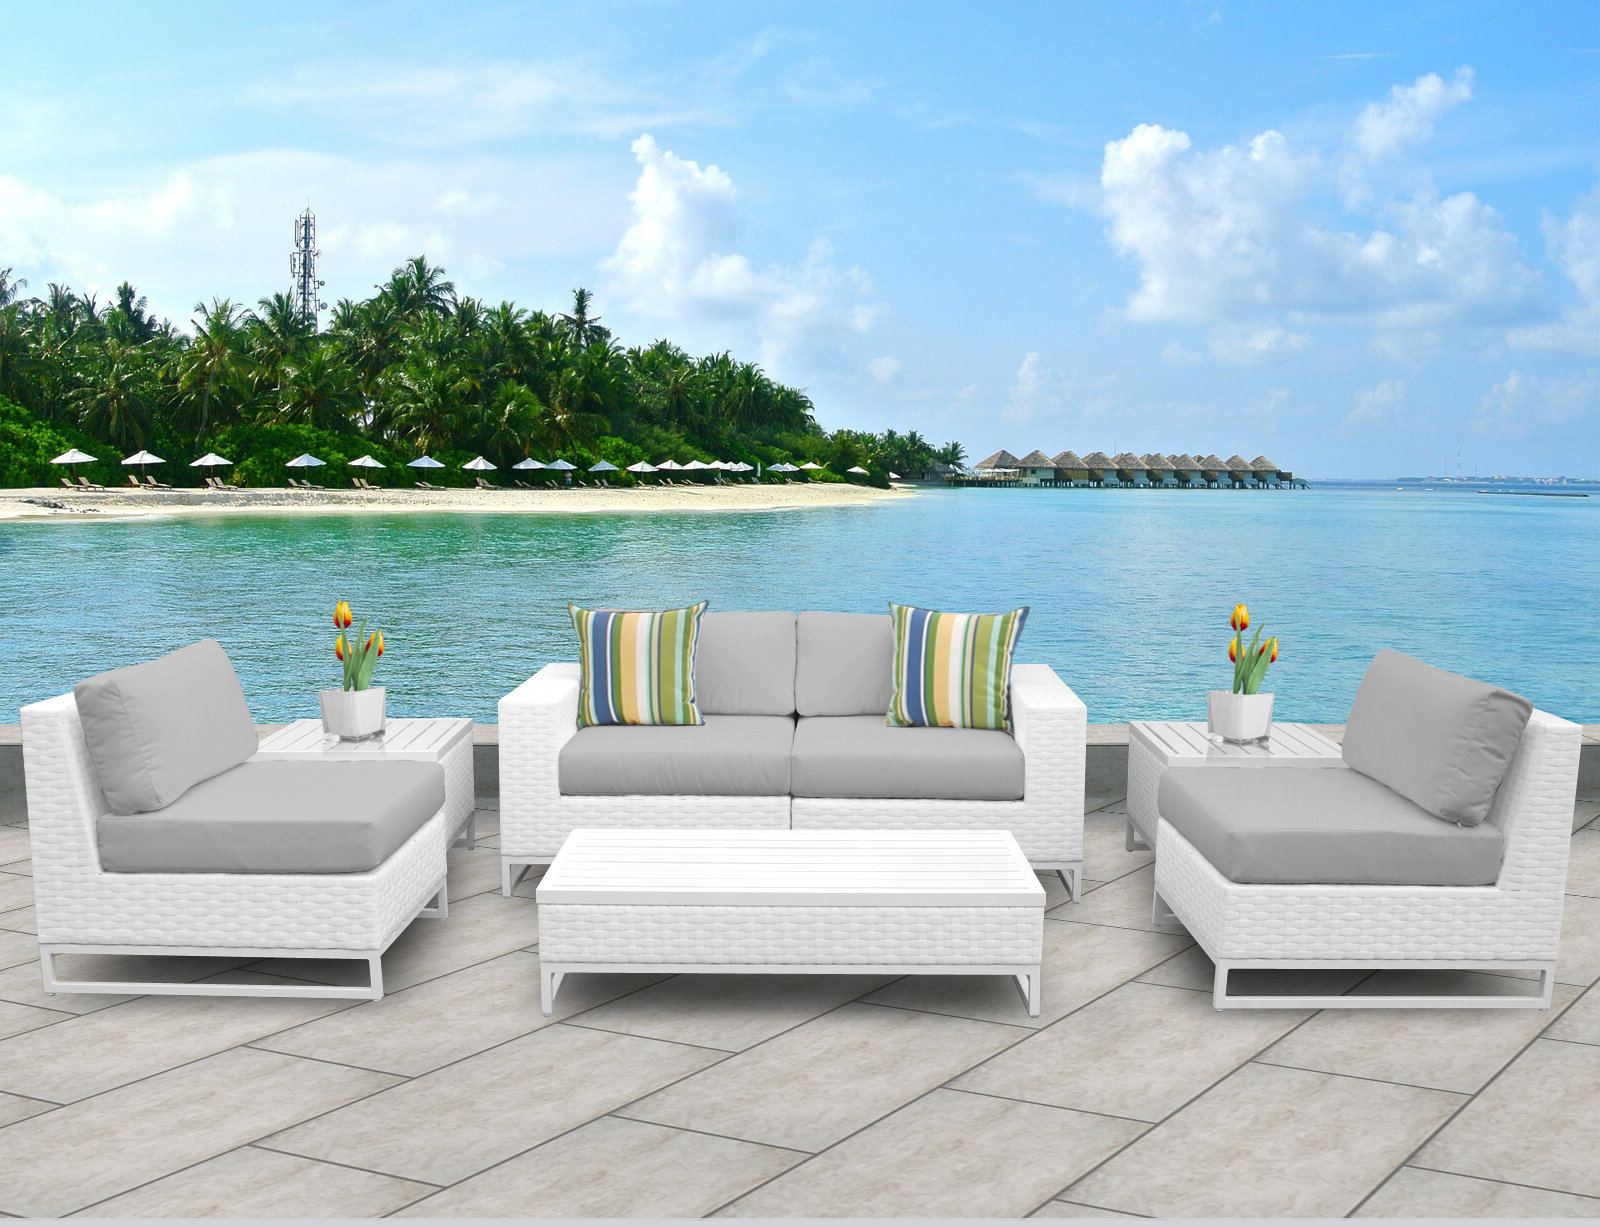 Most Popular Menifee Loveseats With Cushions Pertaining To Menifee 7 Piece Sofa Set With Cushions (View 16 of 25)